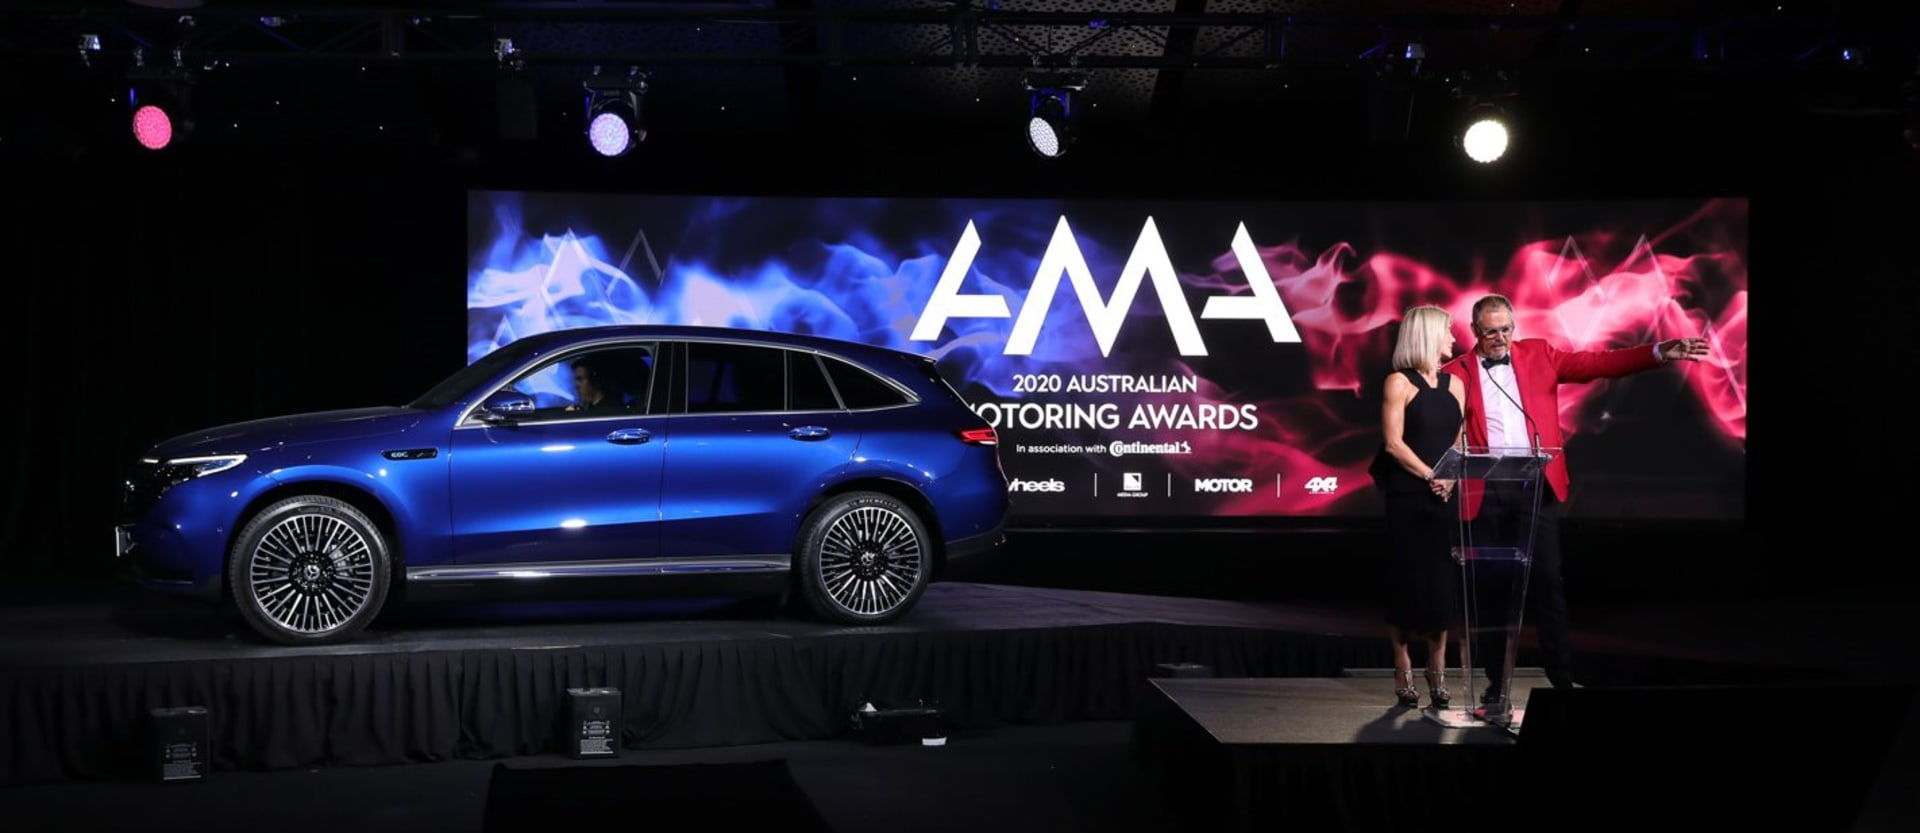 Autralian Motoring Awards 2020